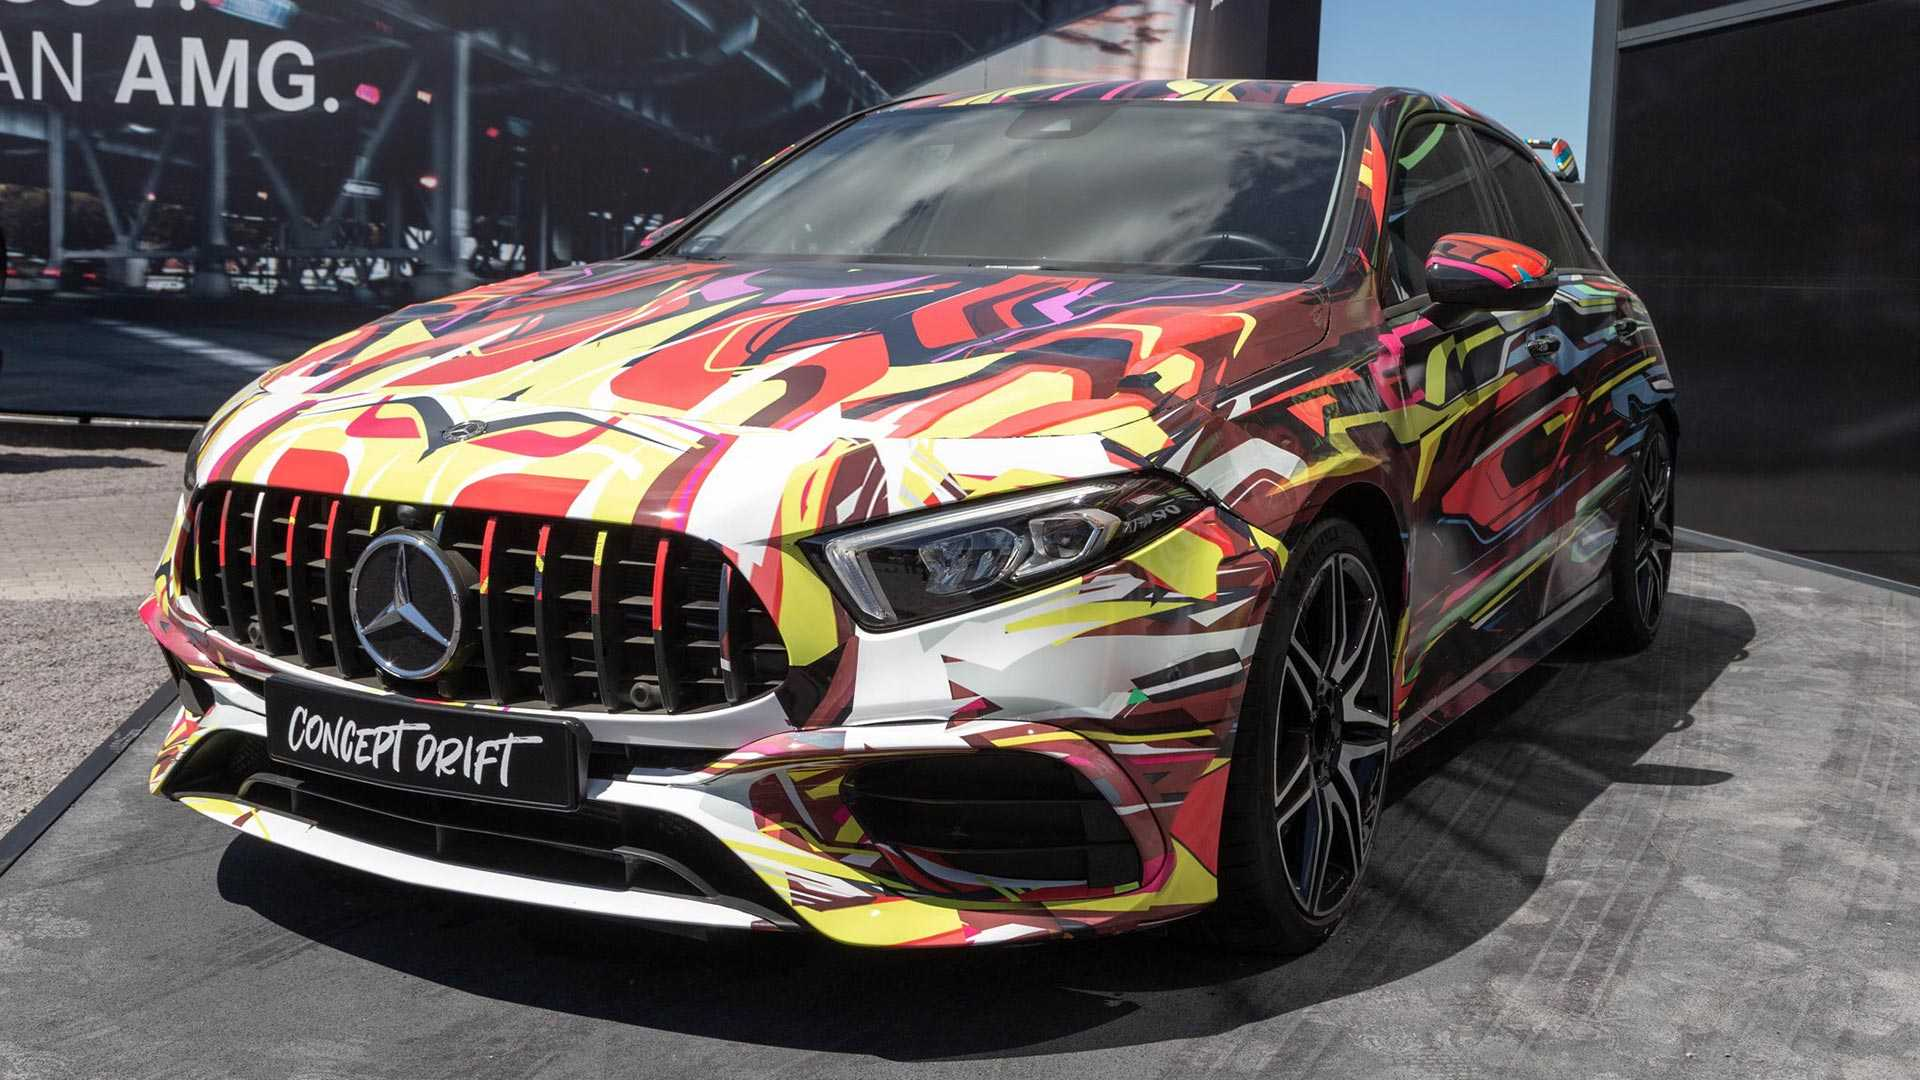 Mercedes Amg A45 Concept Drift Gives Us Our Best Look Yet